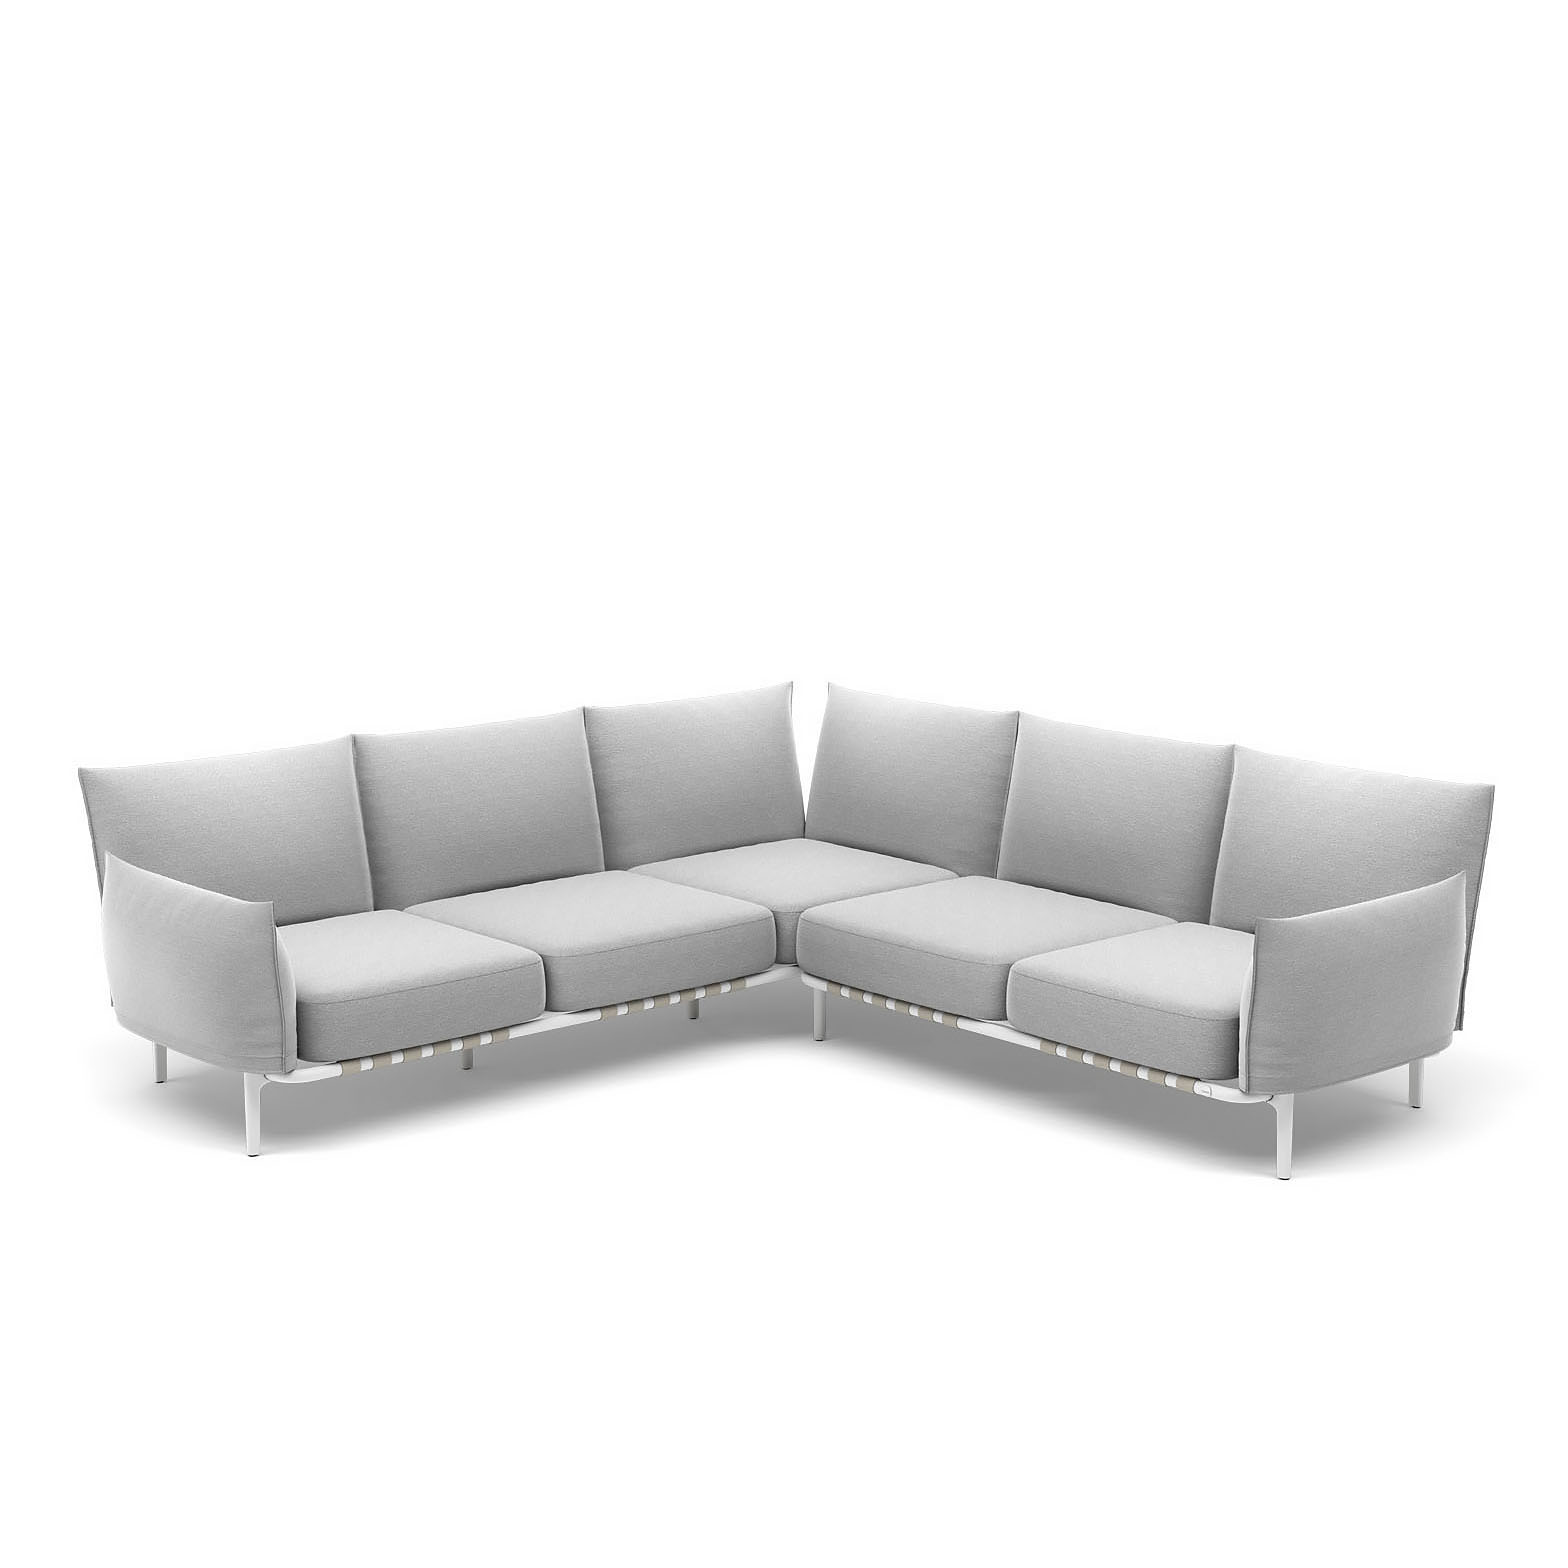 DEDON-BREA-3-Seater-Daybed-right.jpg